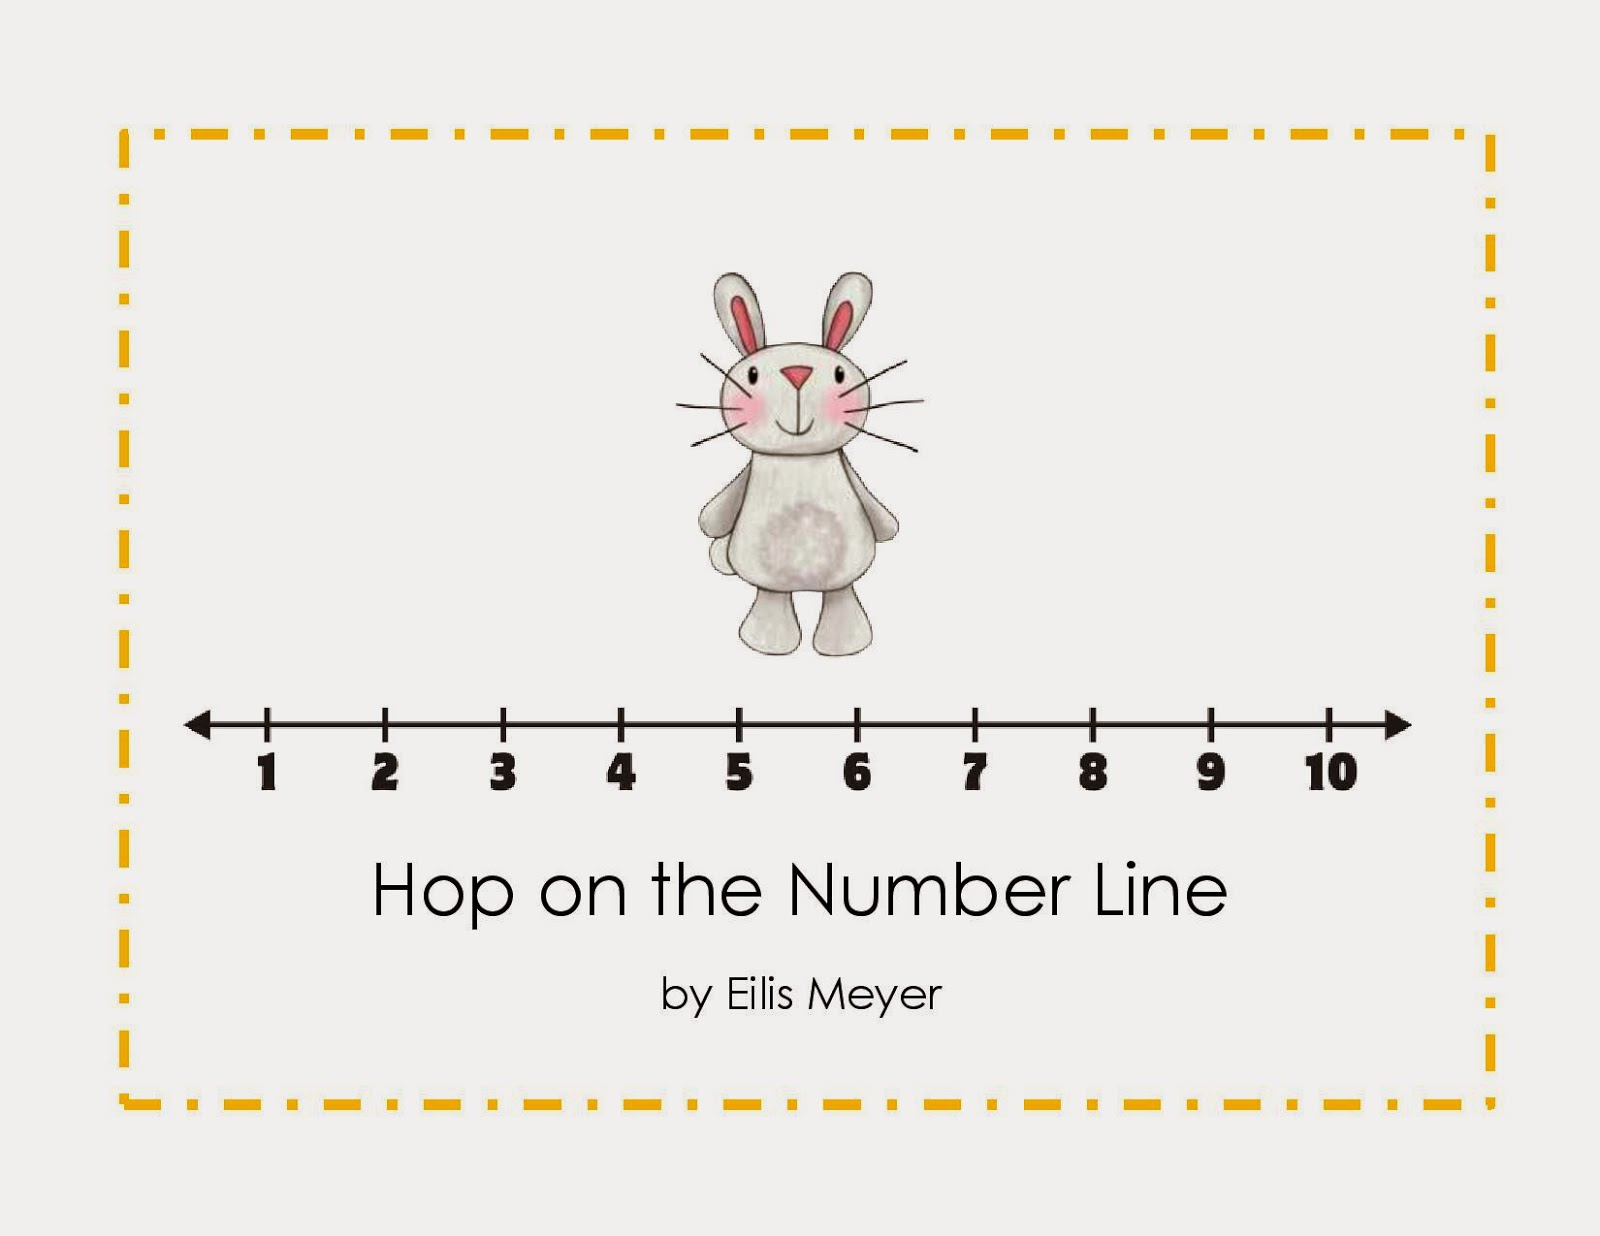 Worksheet Kindergarten Number Line Printable Wosenly Free Worksheet – Printable Number Worksheets for Kindergarten